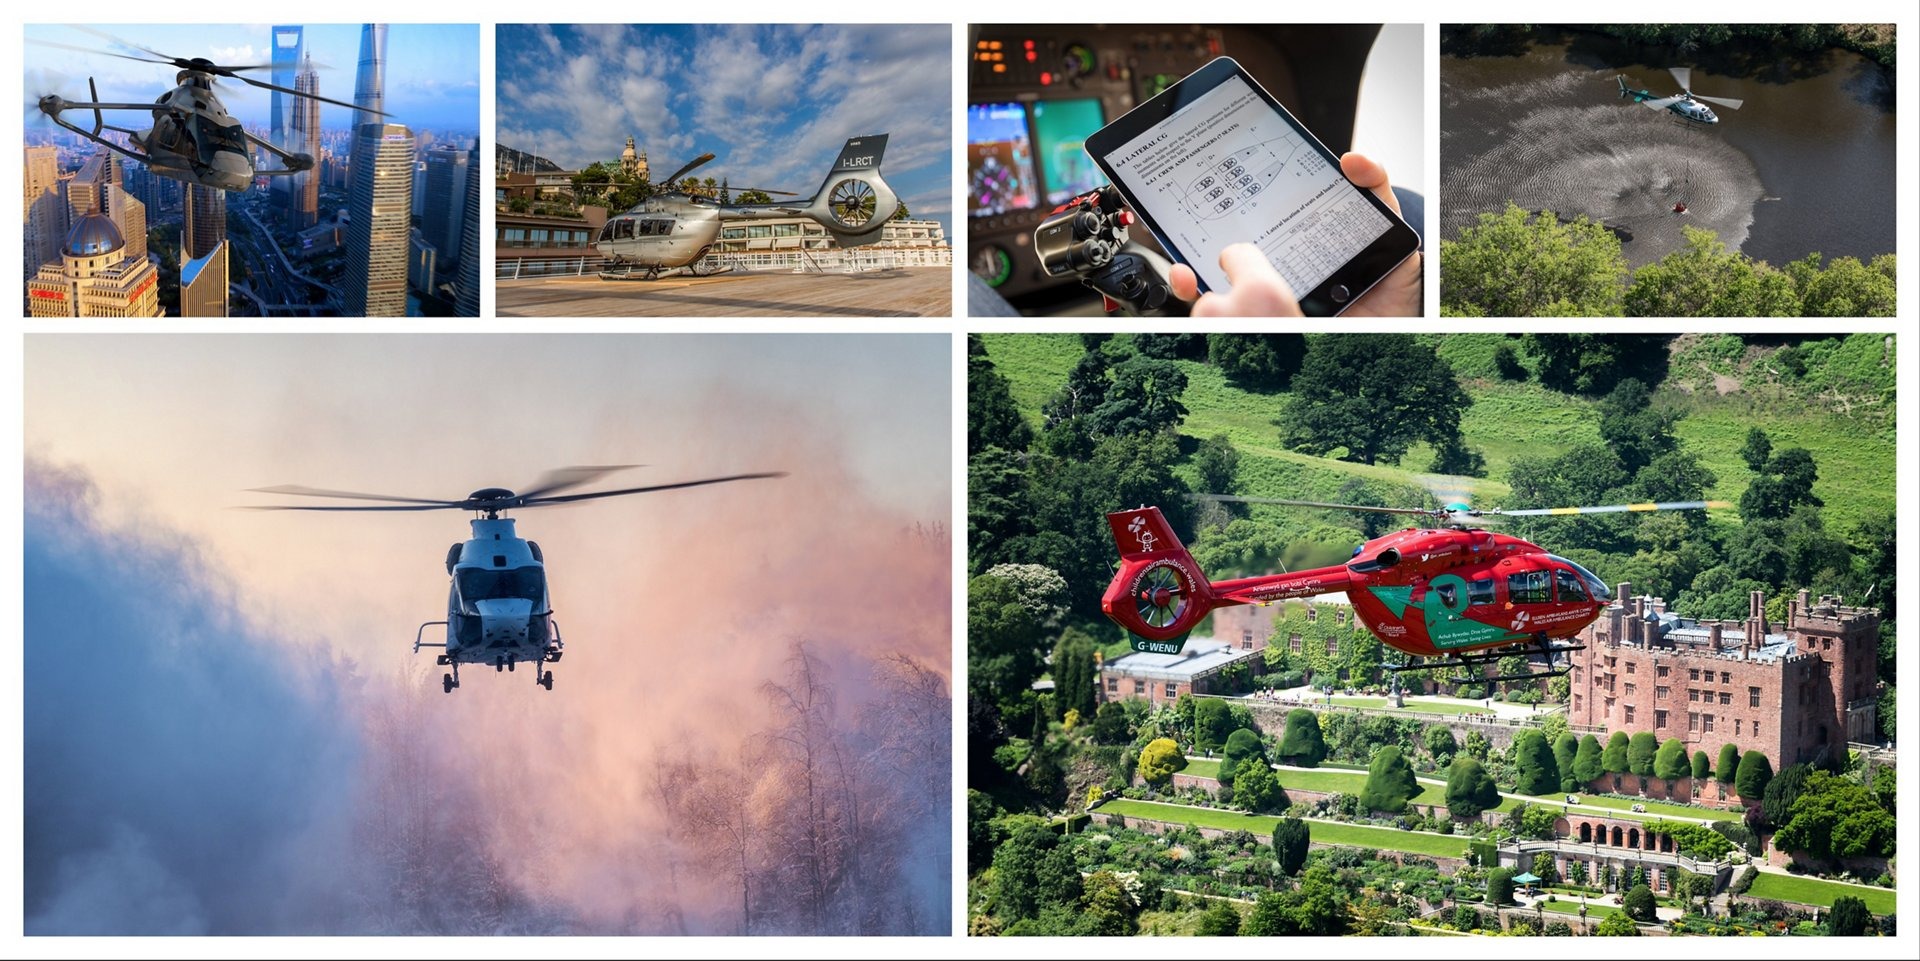 Airbus Helicopters is gearing up to showcase its mission-ready product and services line at this year's Heli-Expo trade show, taking place from 5 -7 March at the Georgia World Congress Center in Atlanta.